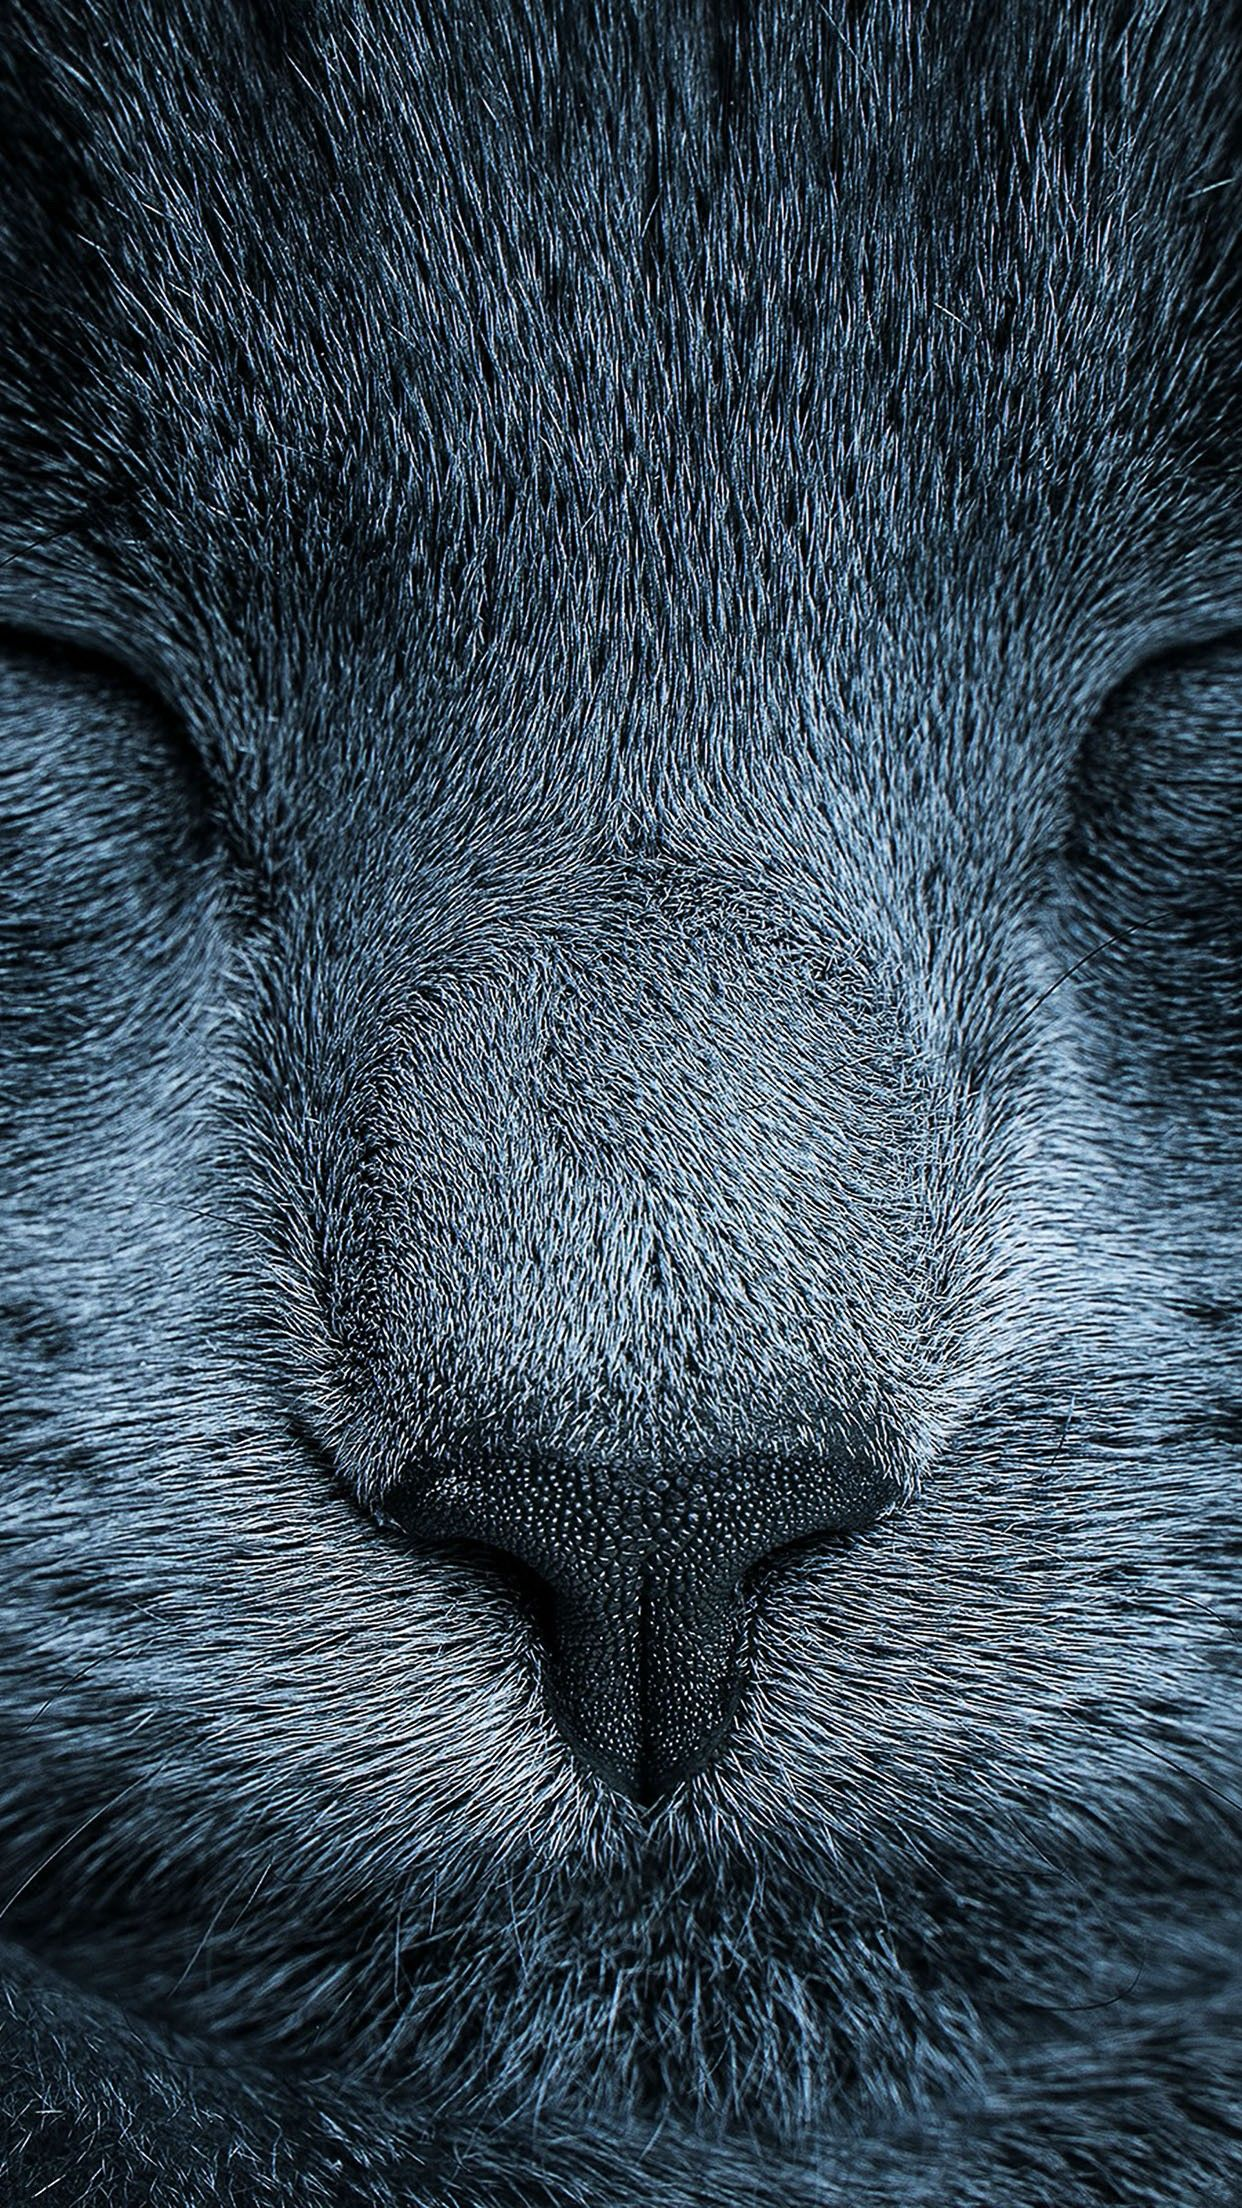 Sleeping Cat Eyes Closed Grey Close Up Smartphone Wallpaper And Lockscreen Hd Animales Animaux Chats Gris